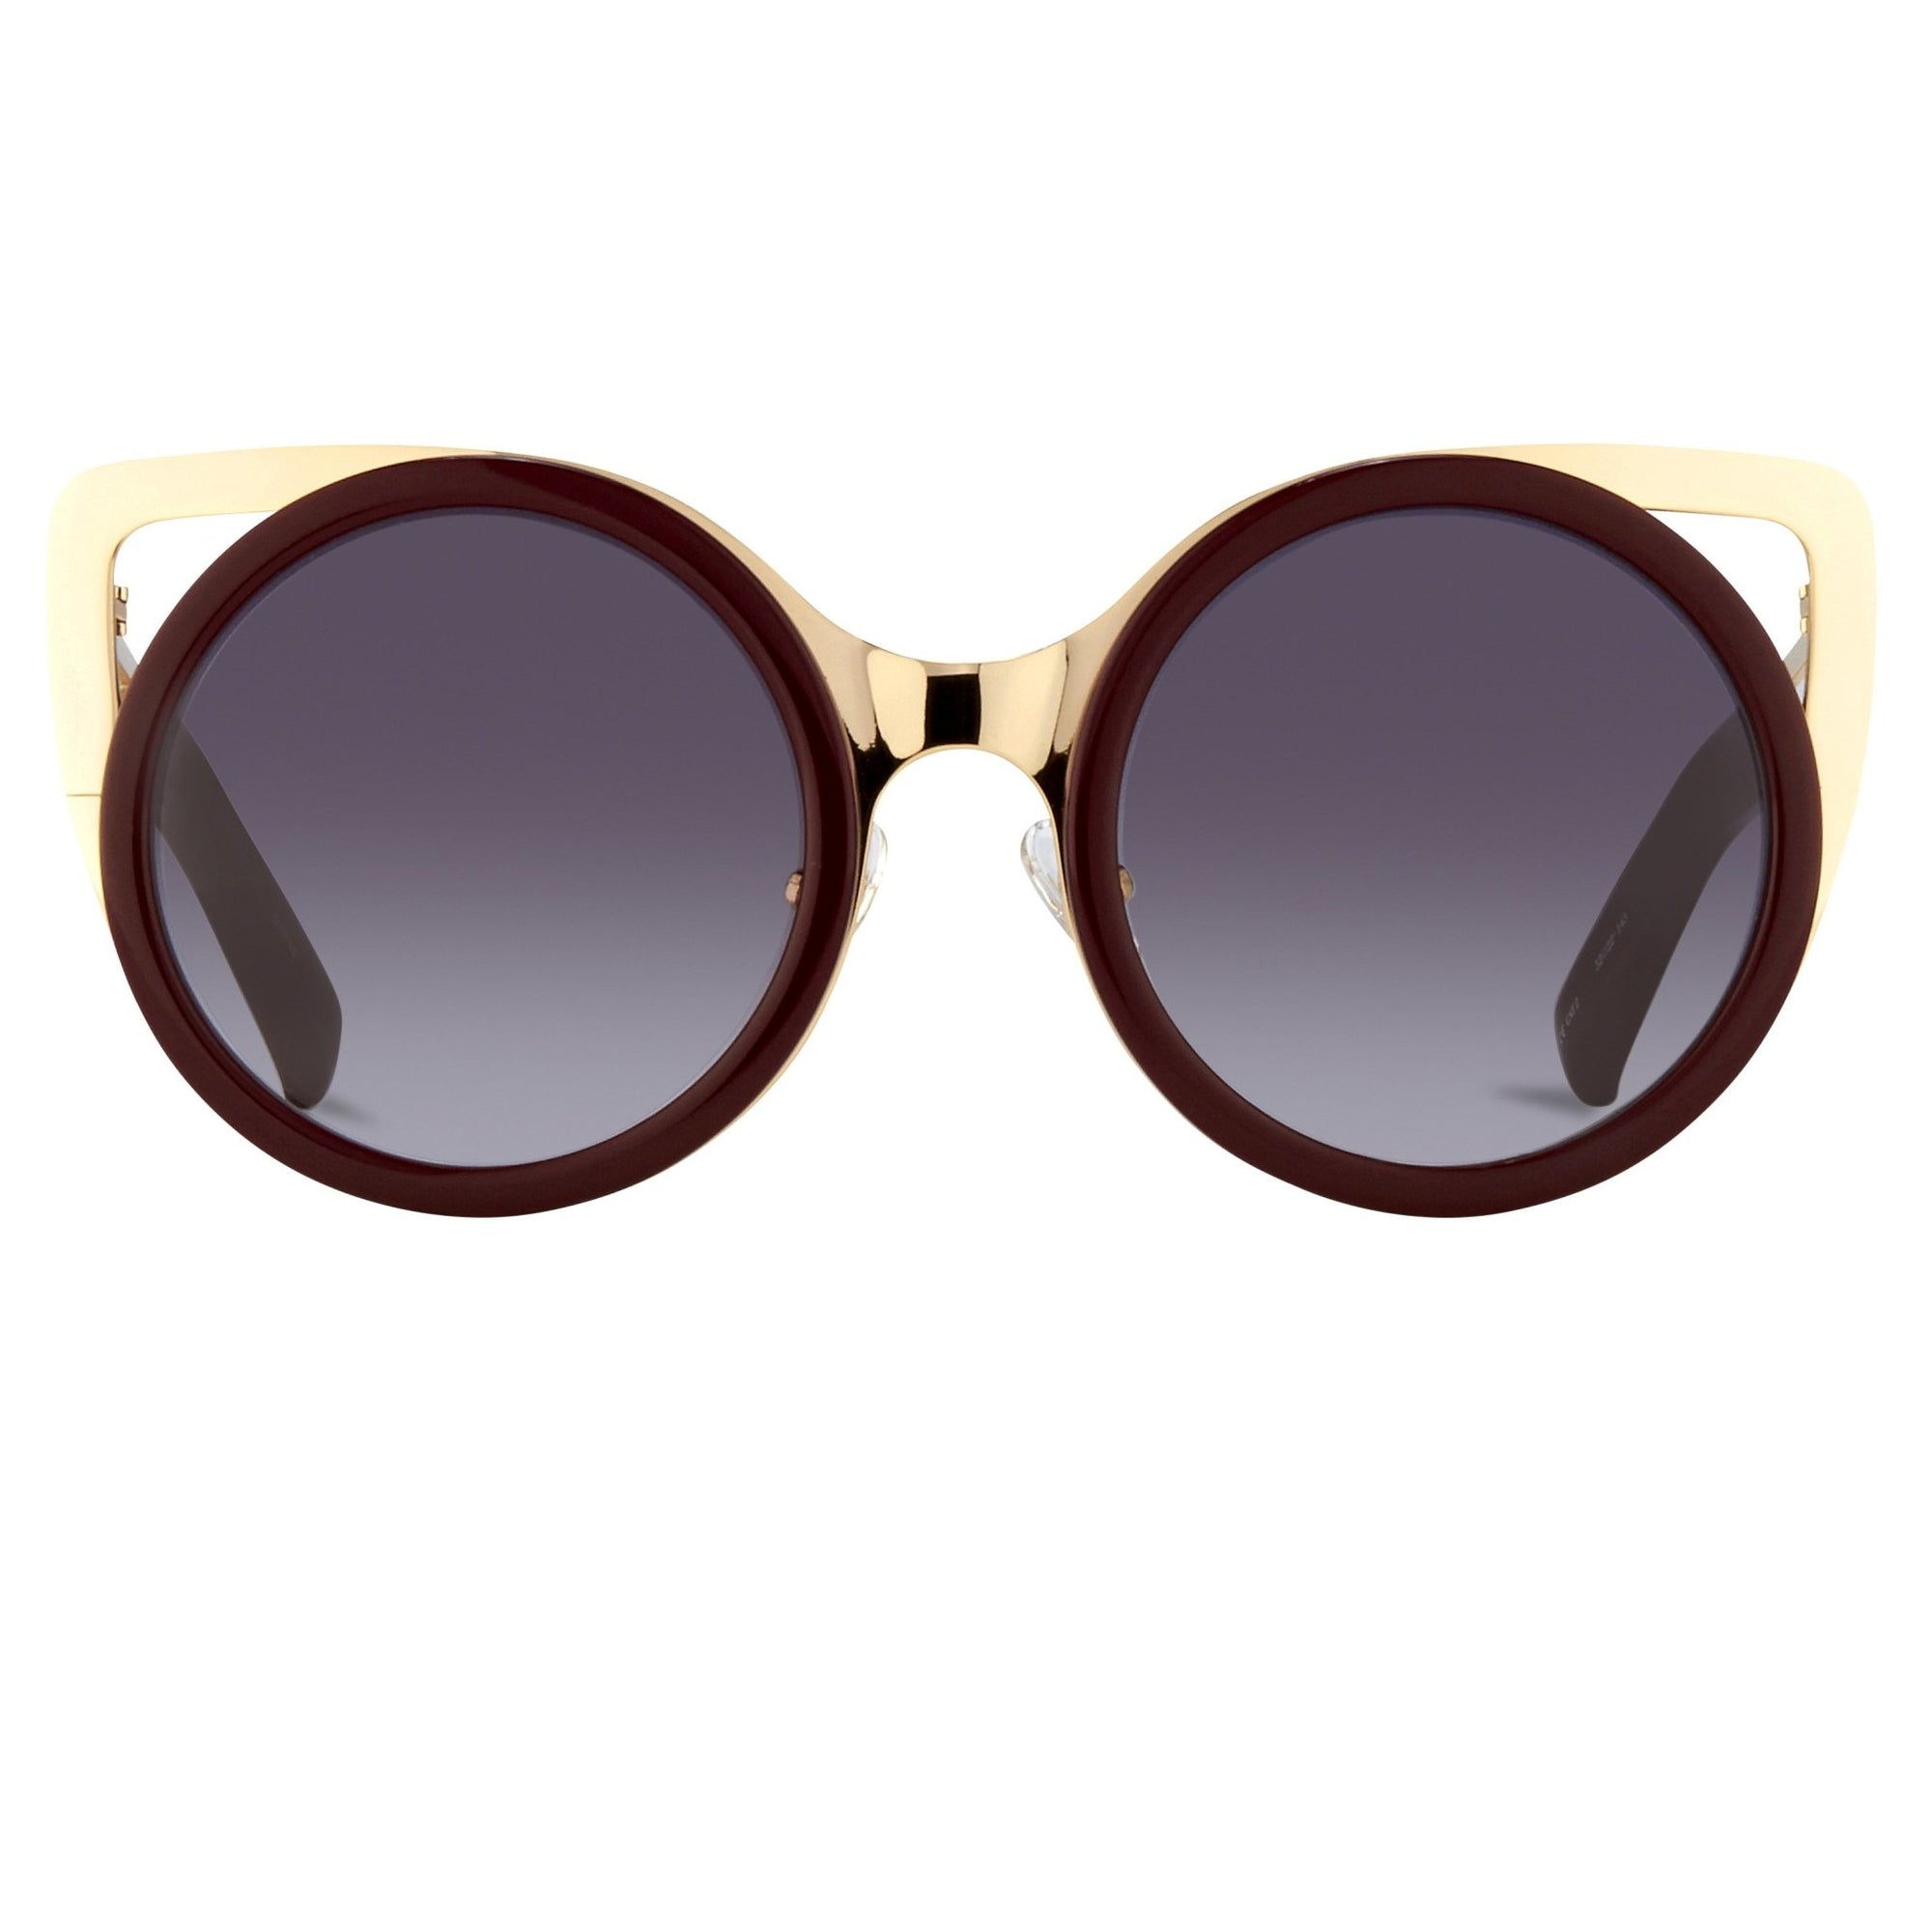 Erdem Women Sunglasses Cat Eye Maroon Light Gold with Grey Graduated Lenses EDM4C8SUN - Watches & Crystals